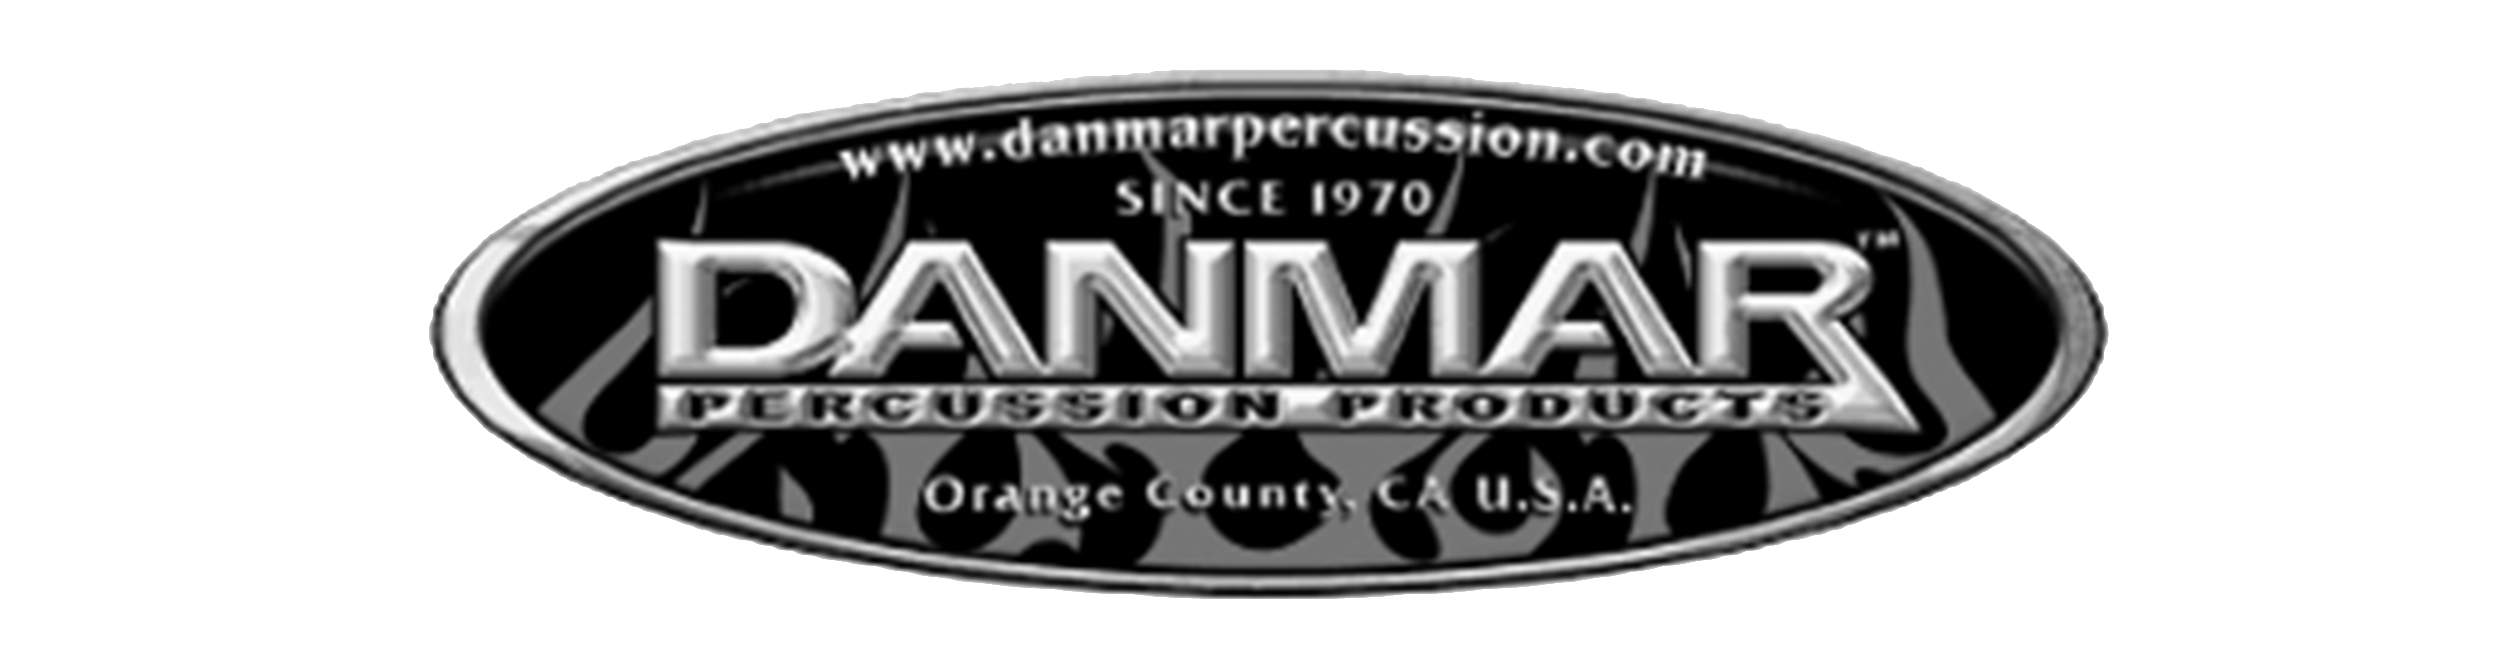 Productos - Dammar Percussion Products